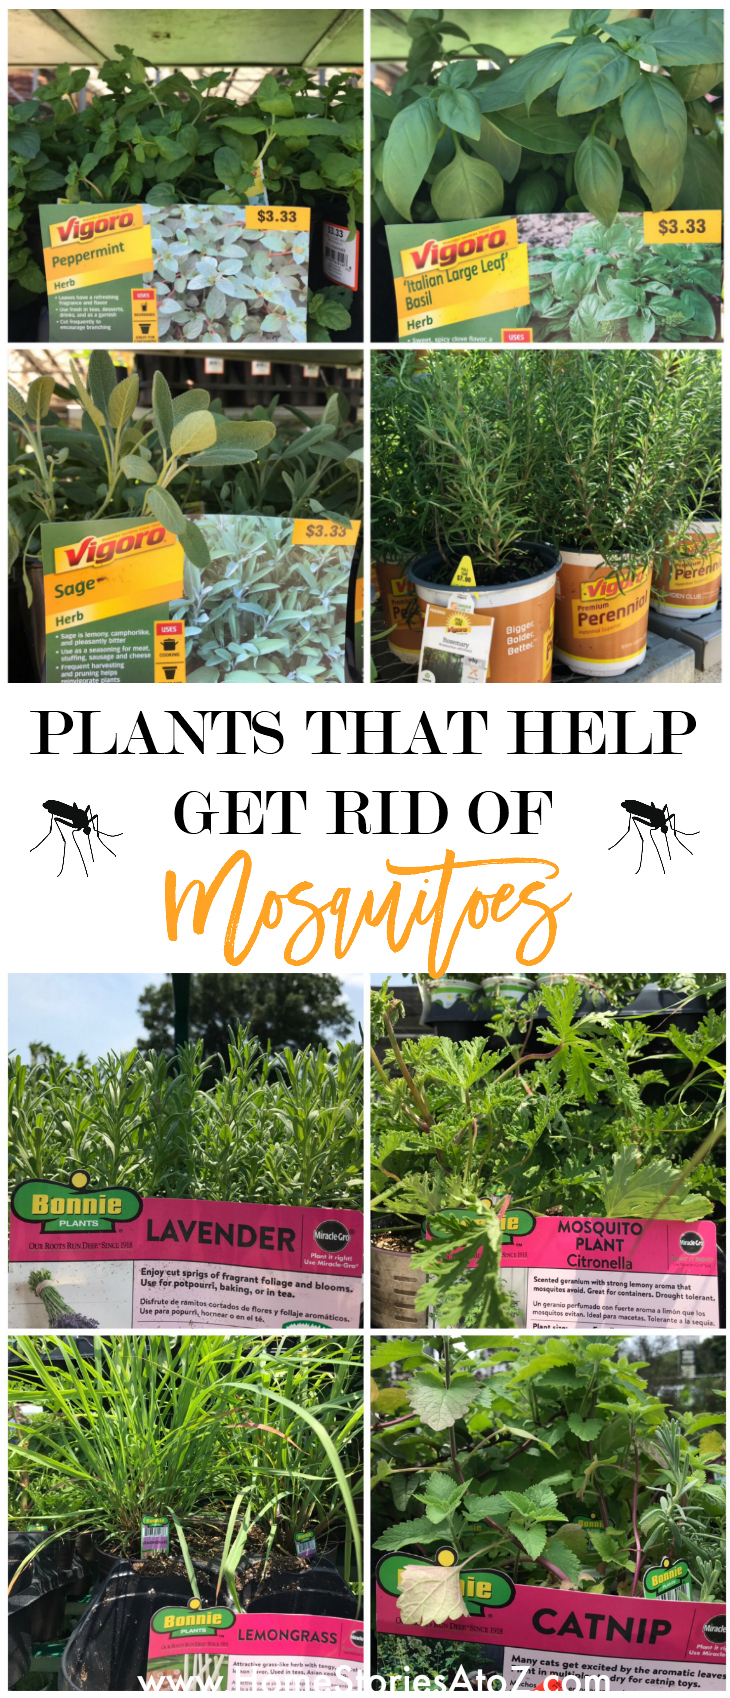 Plants that help get rid of mosquitoes - Home Stories A to Z